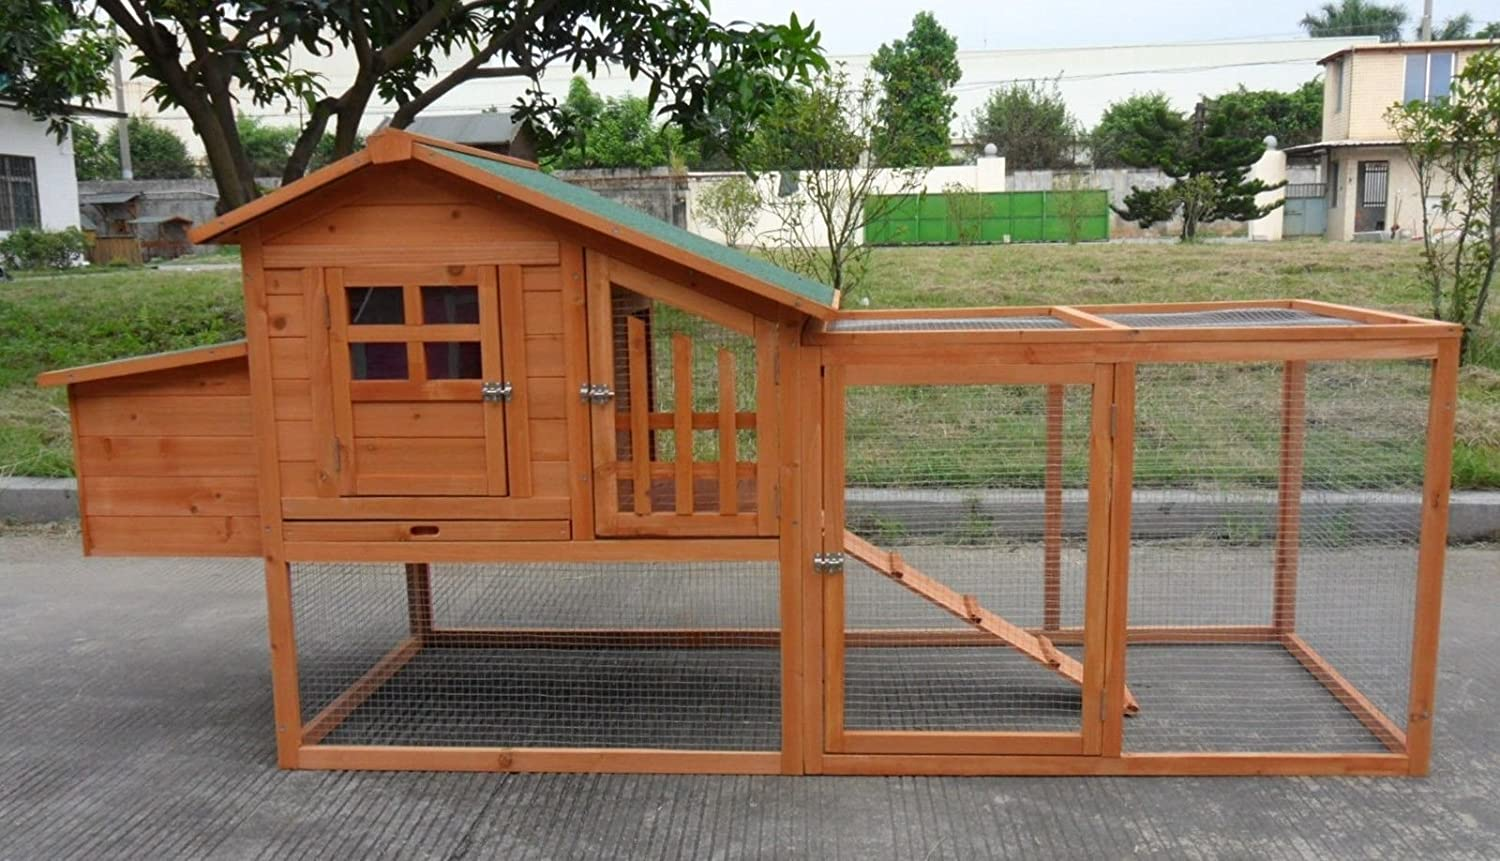 Amazon.com : ChickenCoopOutlet Deluxe Large Wood Chicken Coop Backyard Hen  House 4 6 Chickens W Nesting Box Run : Garden U0026 Outdoor